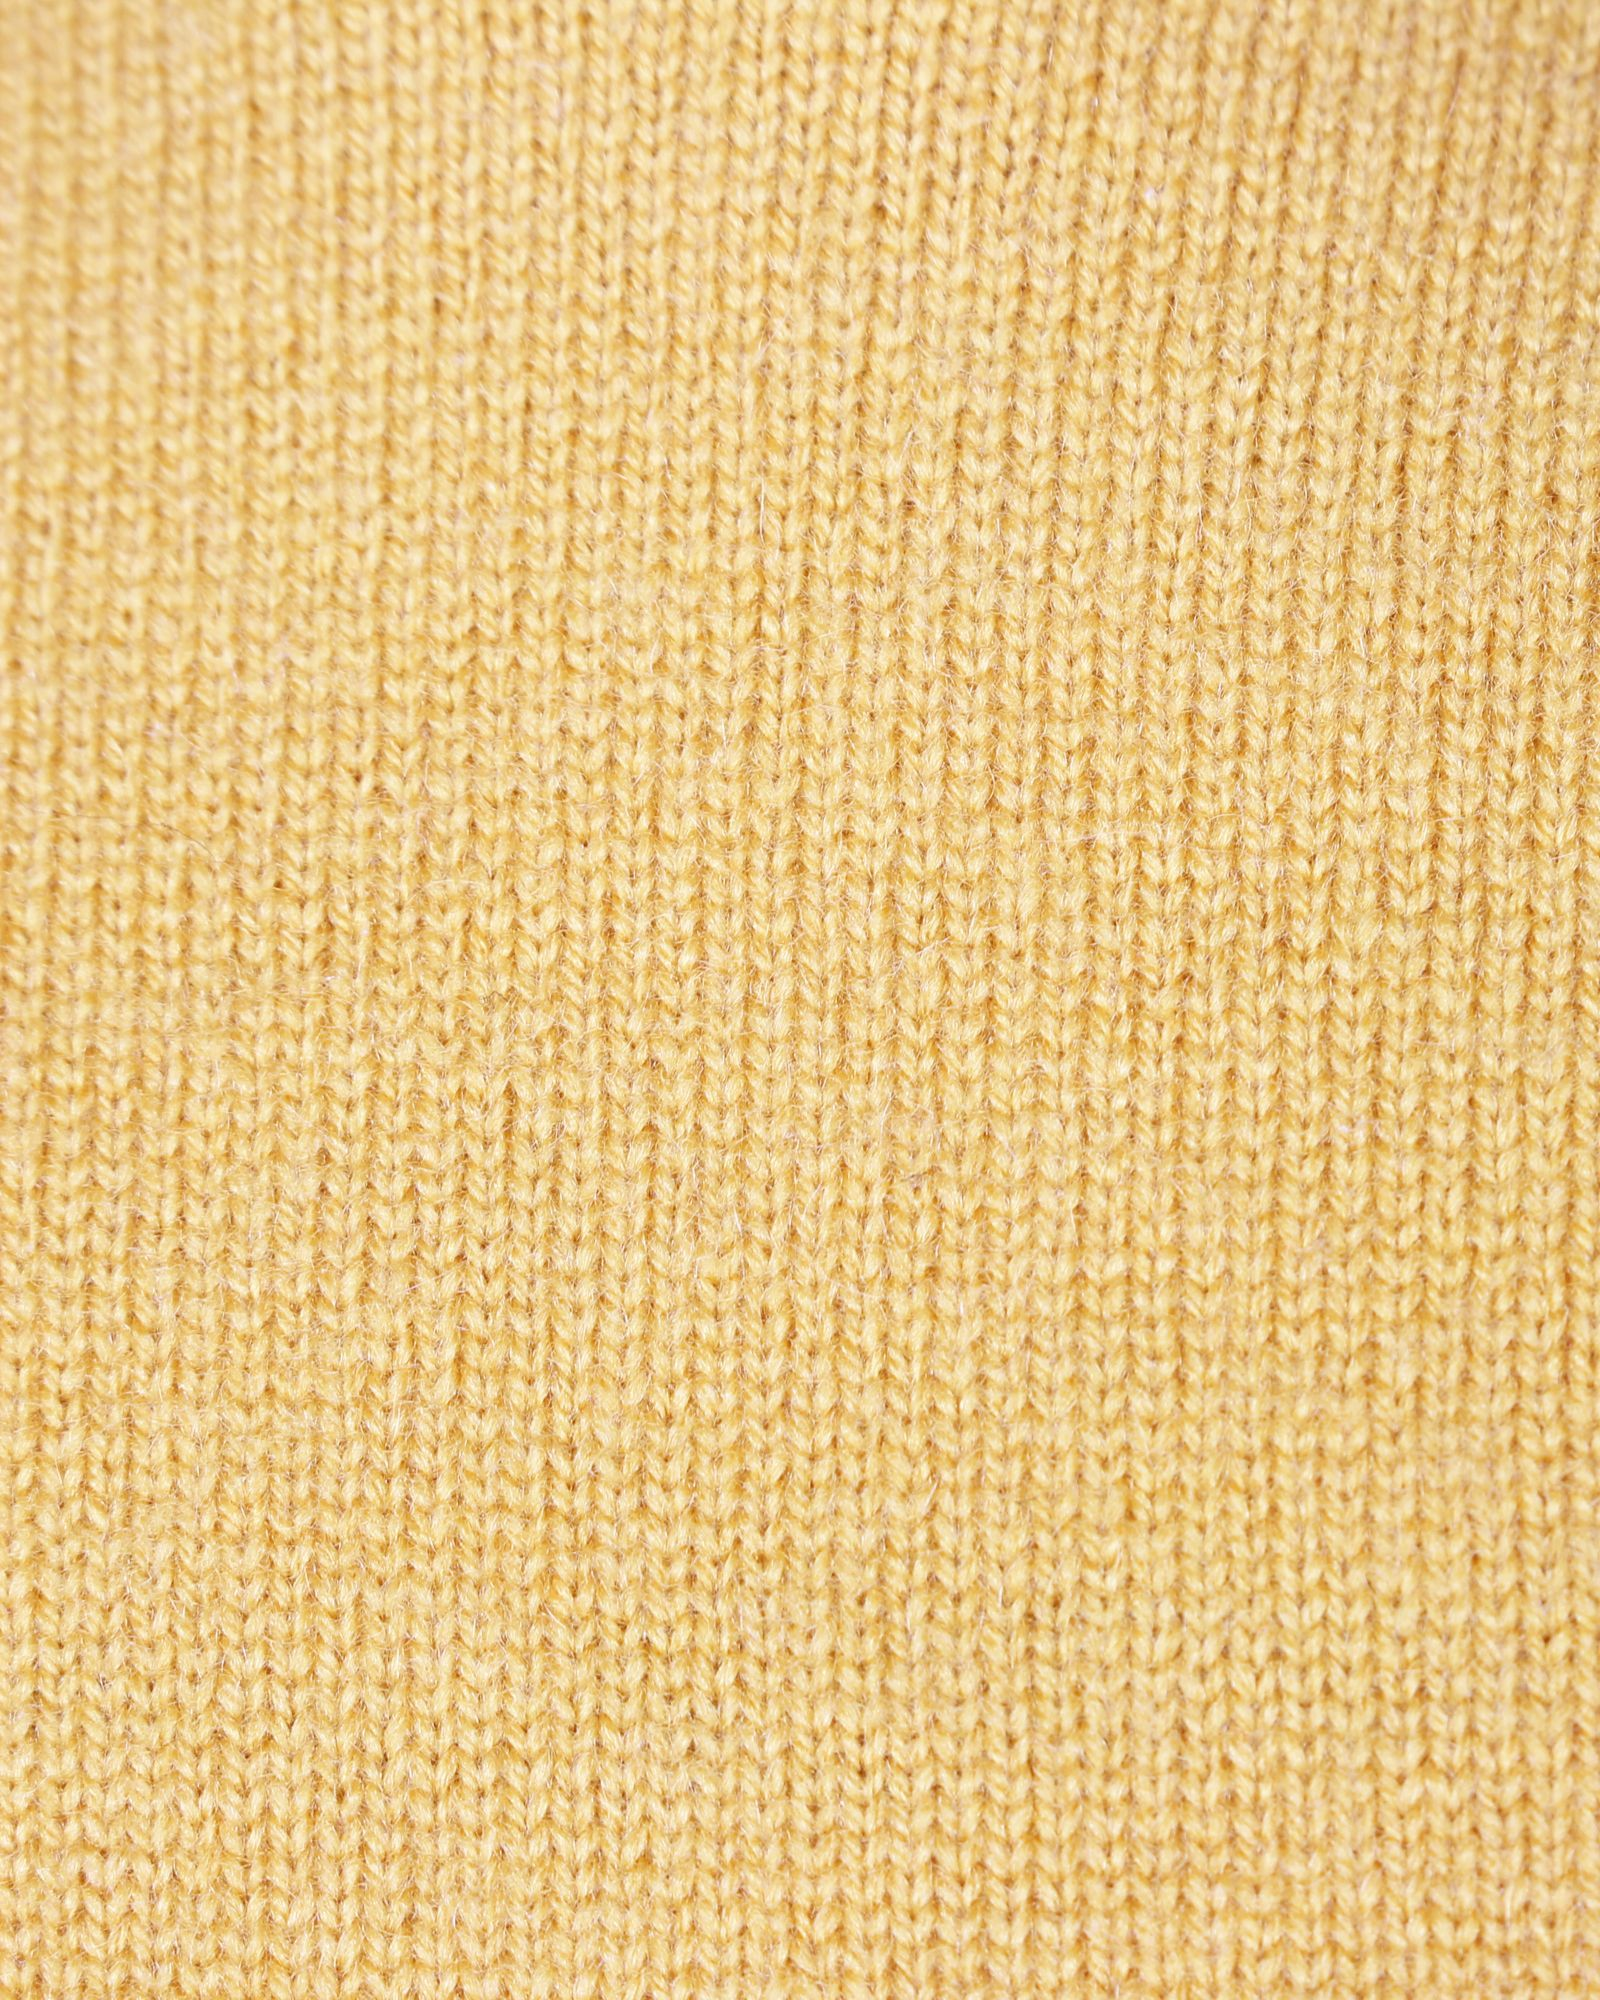 Hermès Sleeveless Yellow Cashmere Top With Side Zipper -Pre Owned Condition Excellent